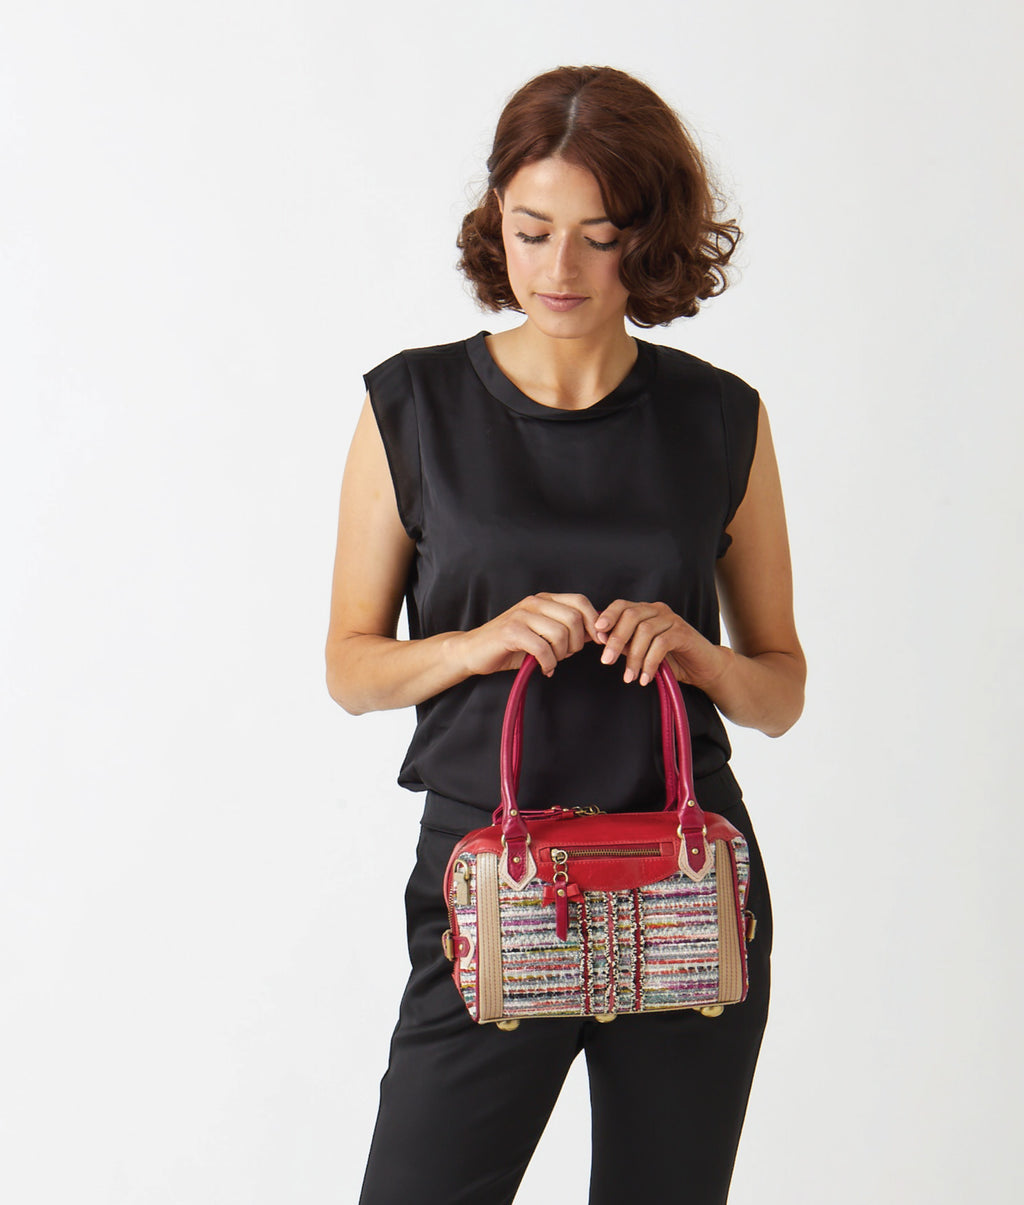 ISADORA MINI Bowler Bag - Gypsy